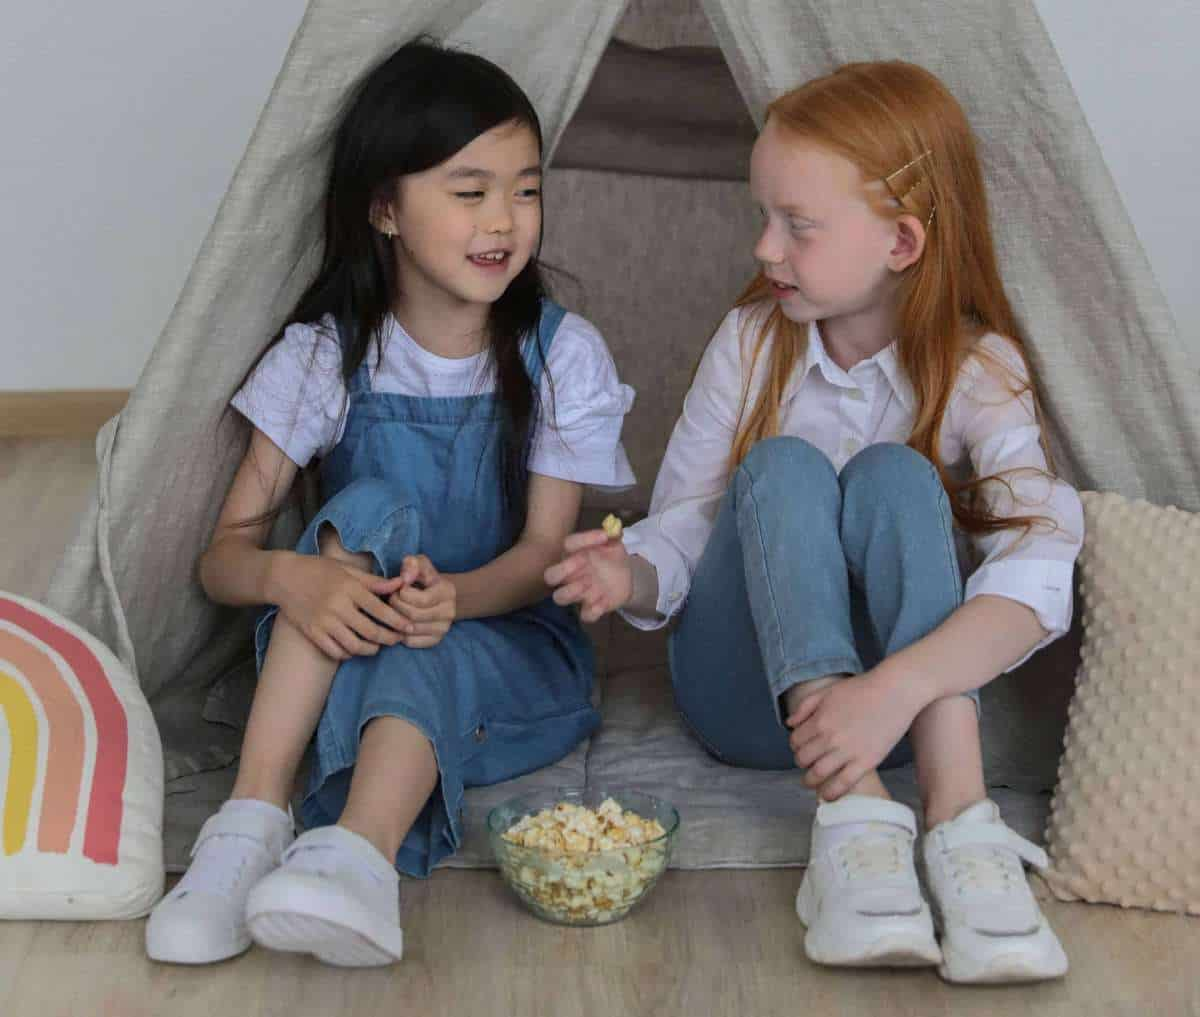 children eating popcorn by a tent